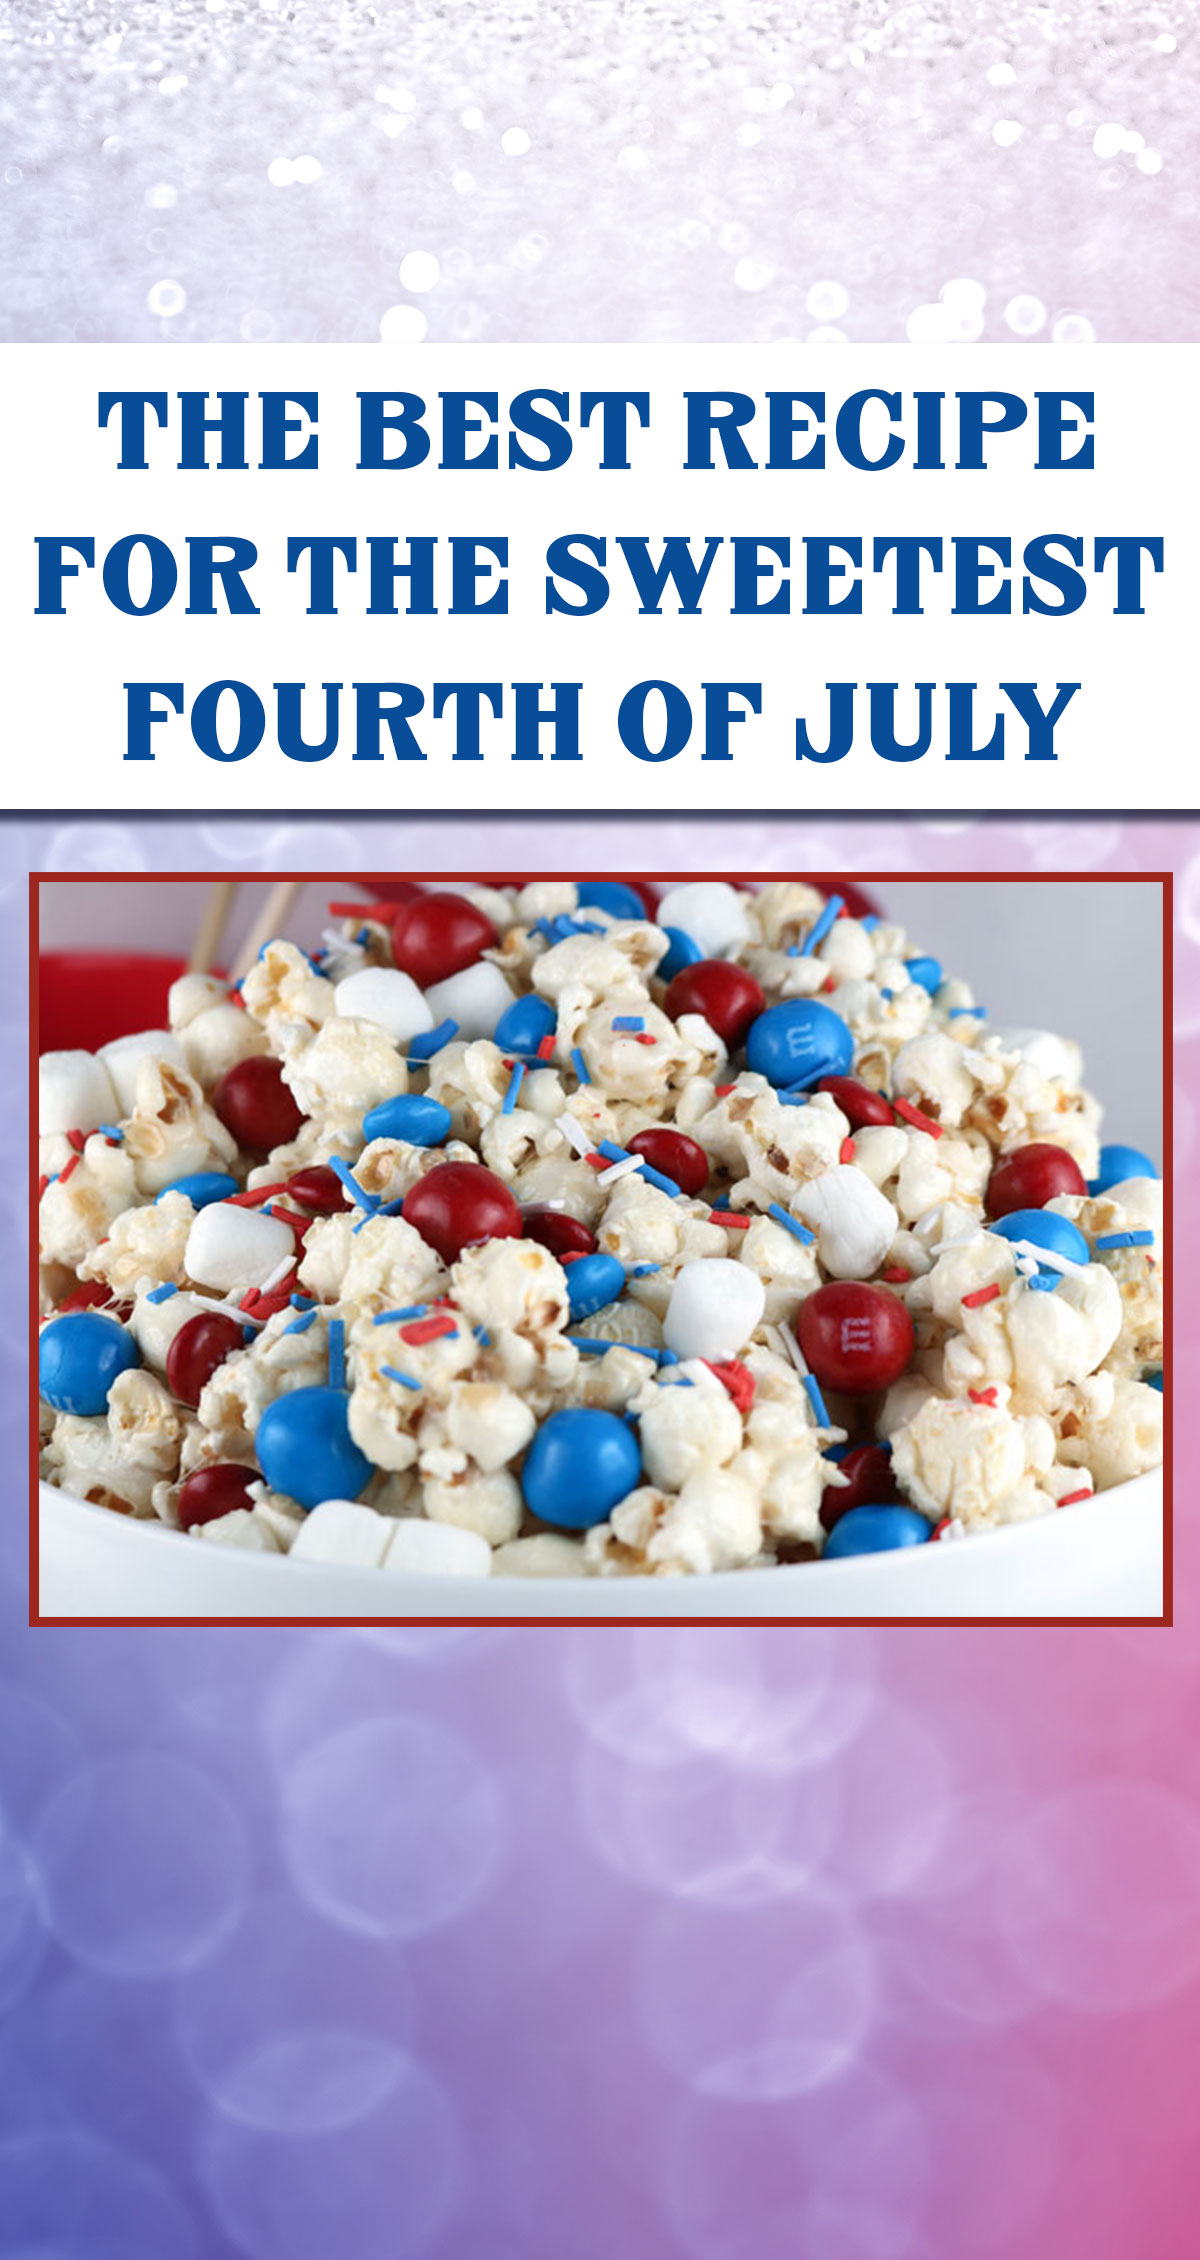 The Best Recipe for the Sweetest Fourth of July Pin